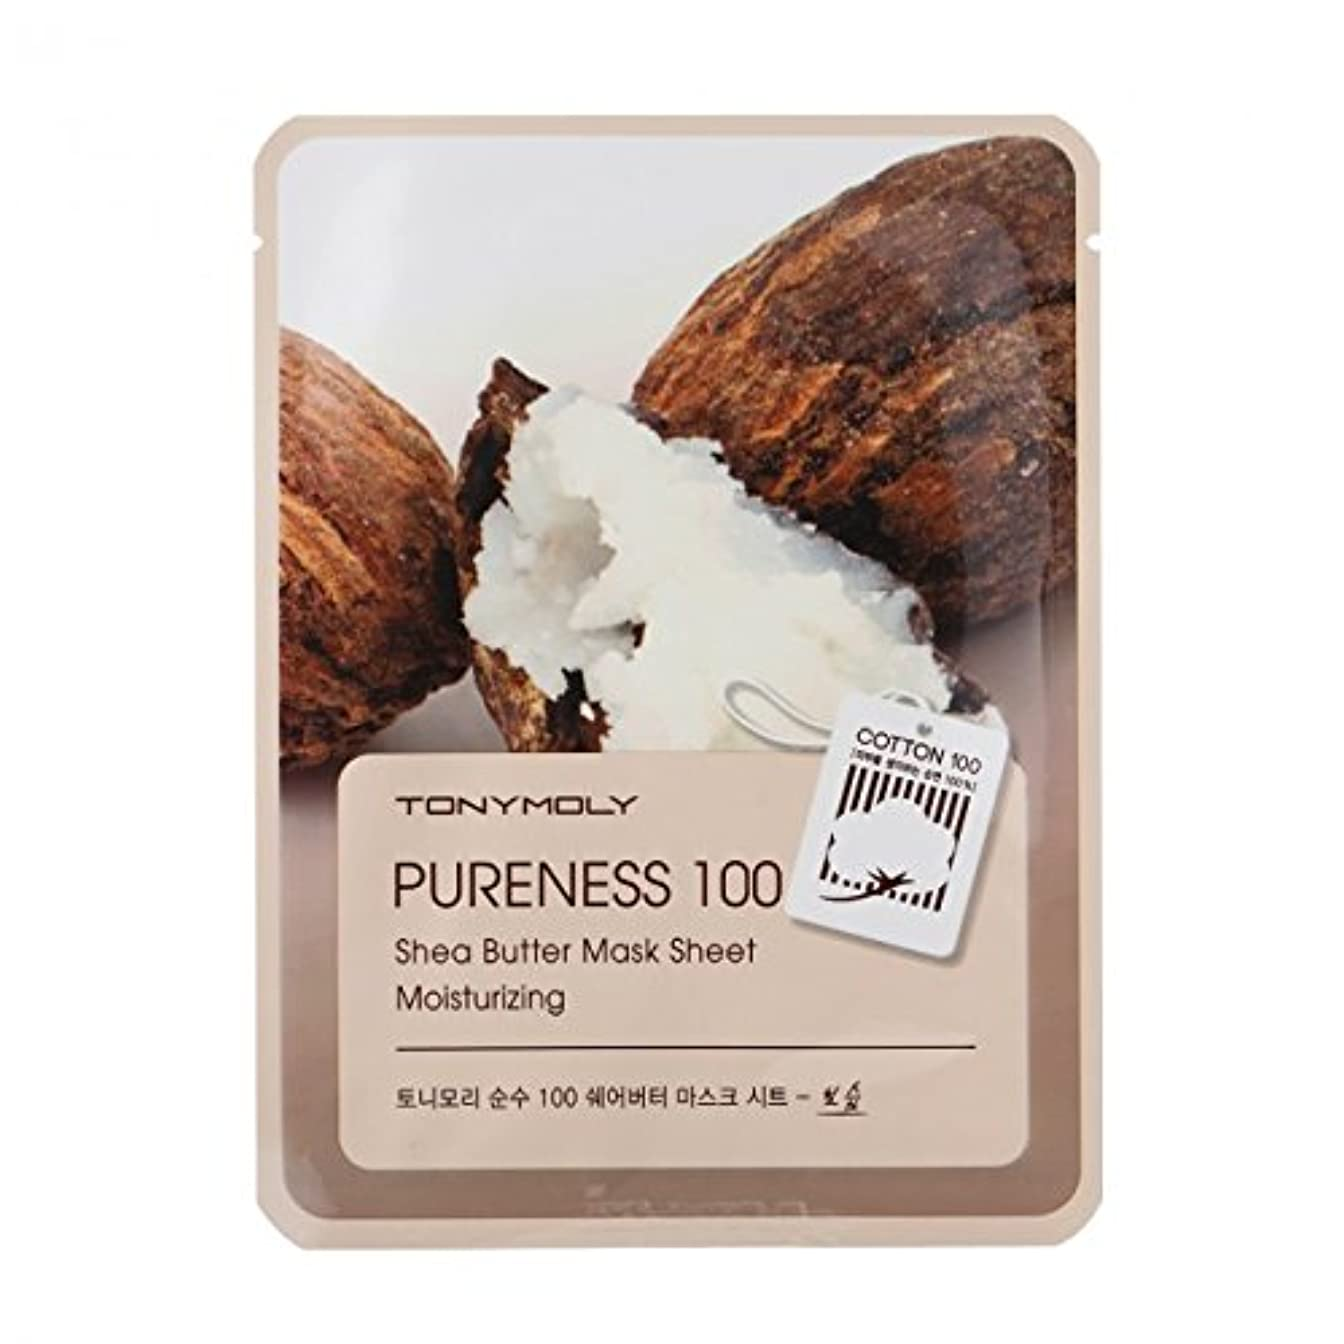 小石特異なボーダー(6 Pack) TONYMOLY Pureness 100 Shea Butter Mask Sheet Moisturizing (並行輸入品)